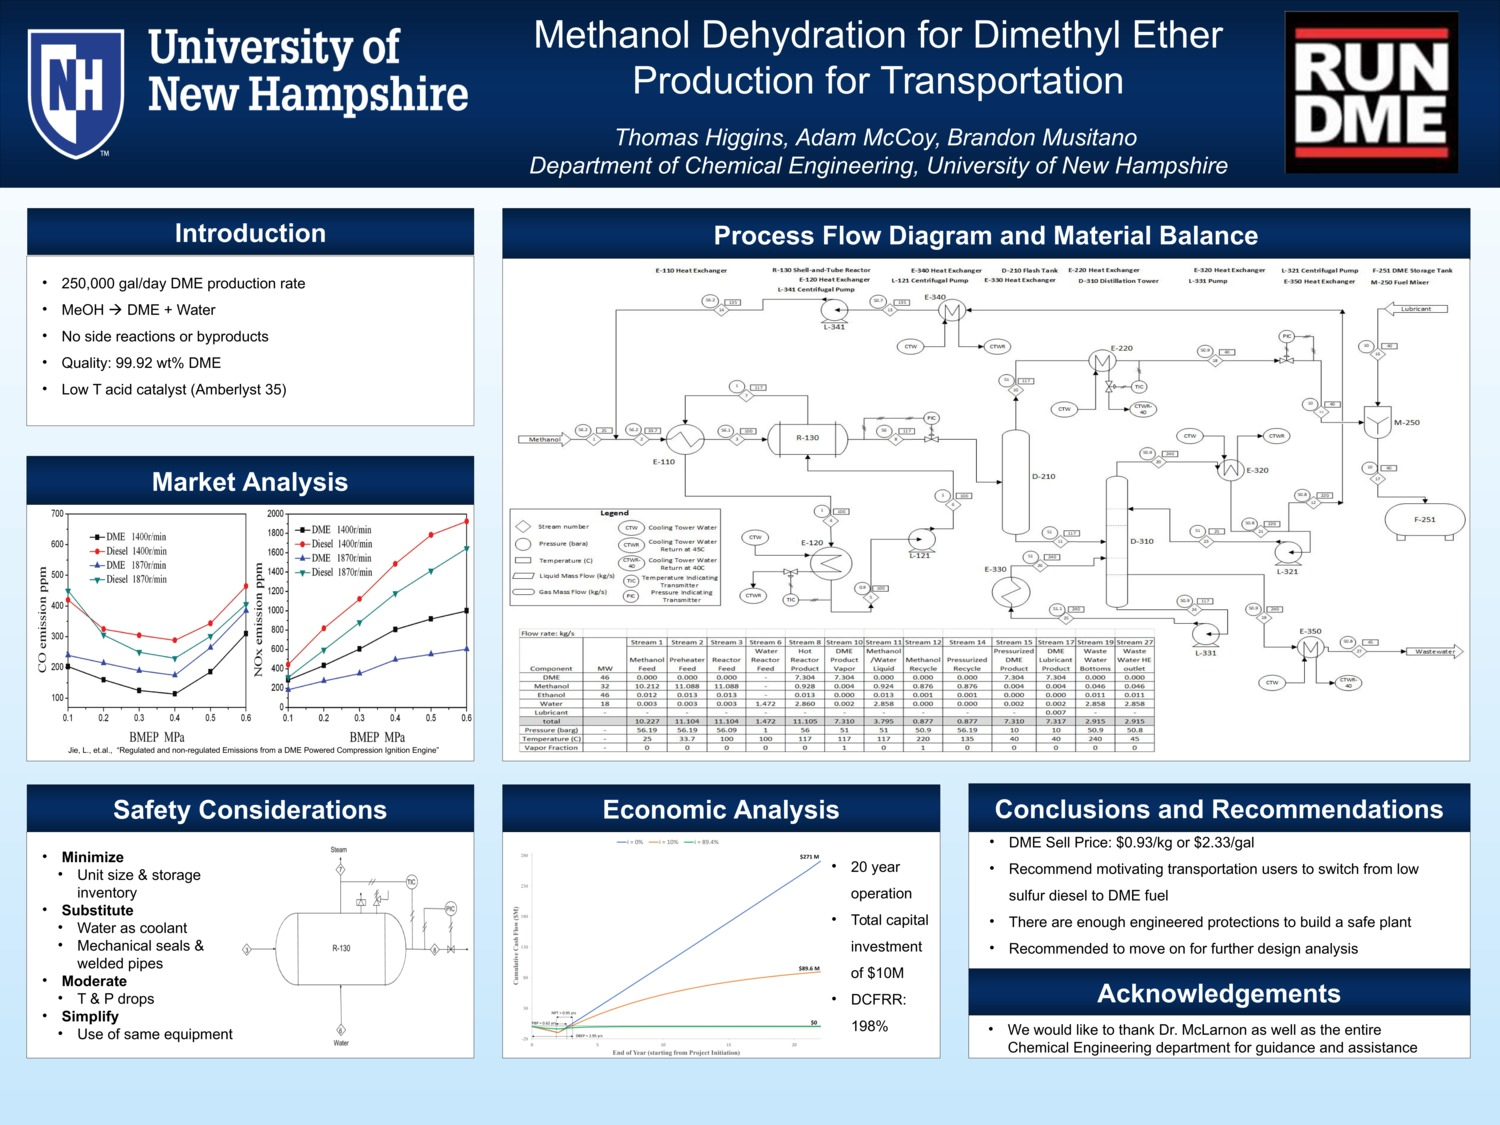 Methanol Dehydration For Dimethyl Ether Production For Transportation by anm2009